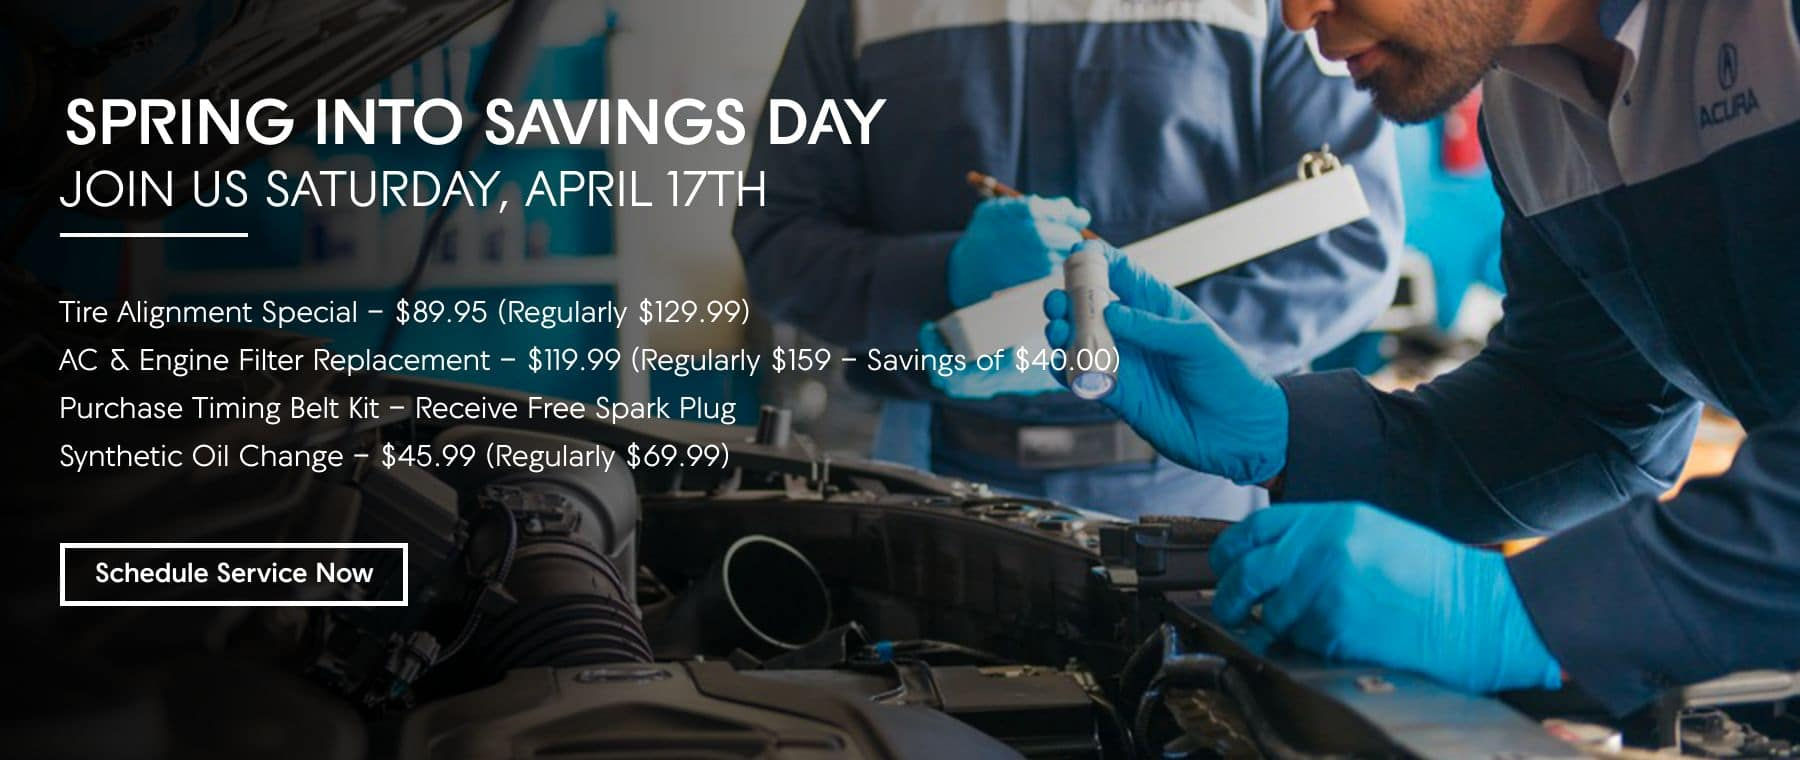 Spring Into Savings Day